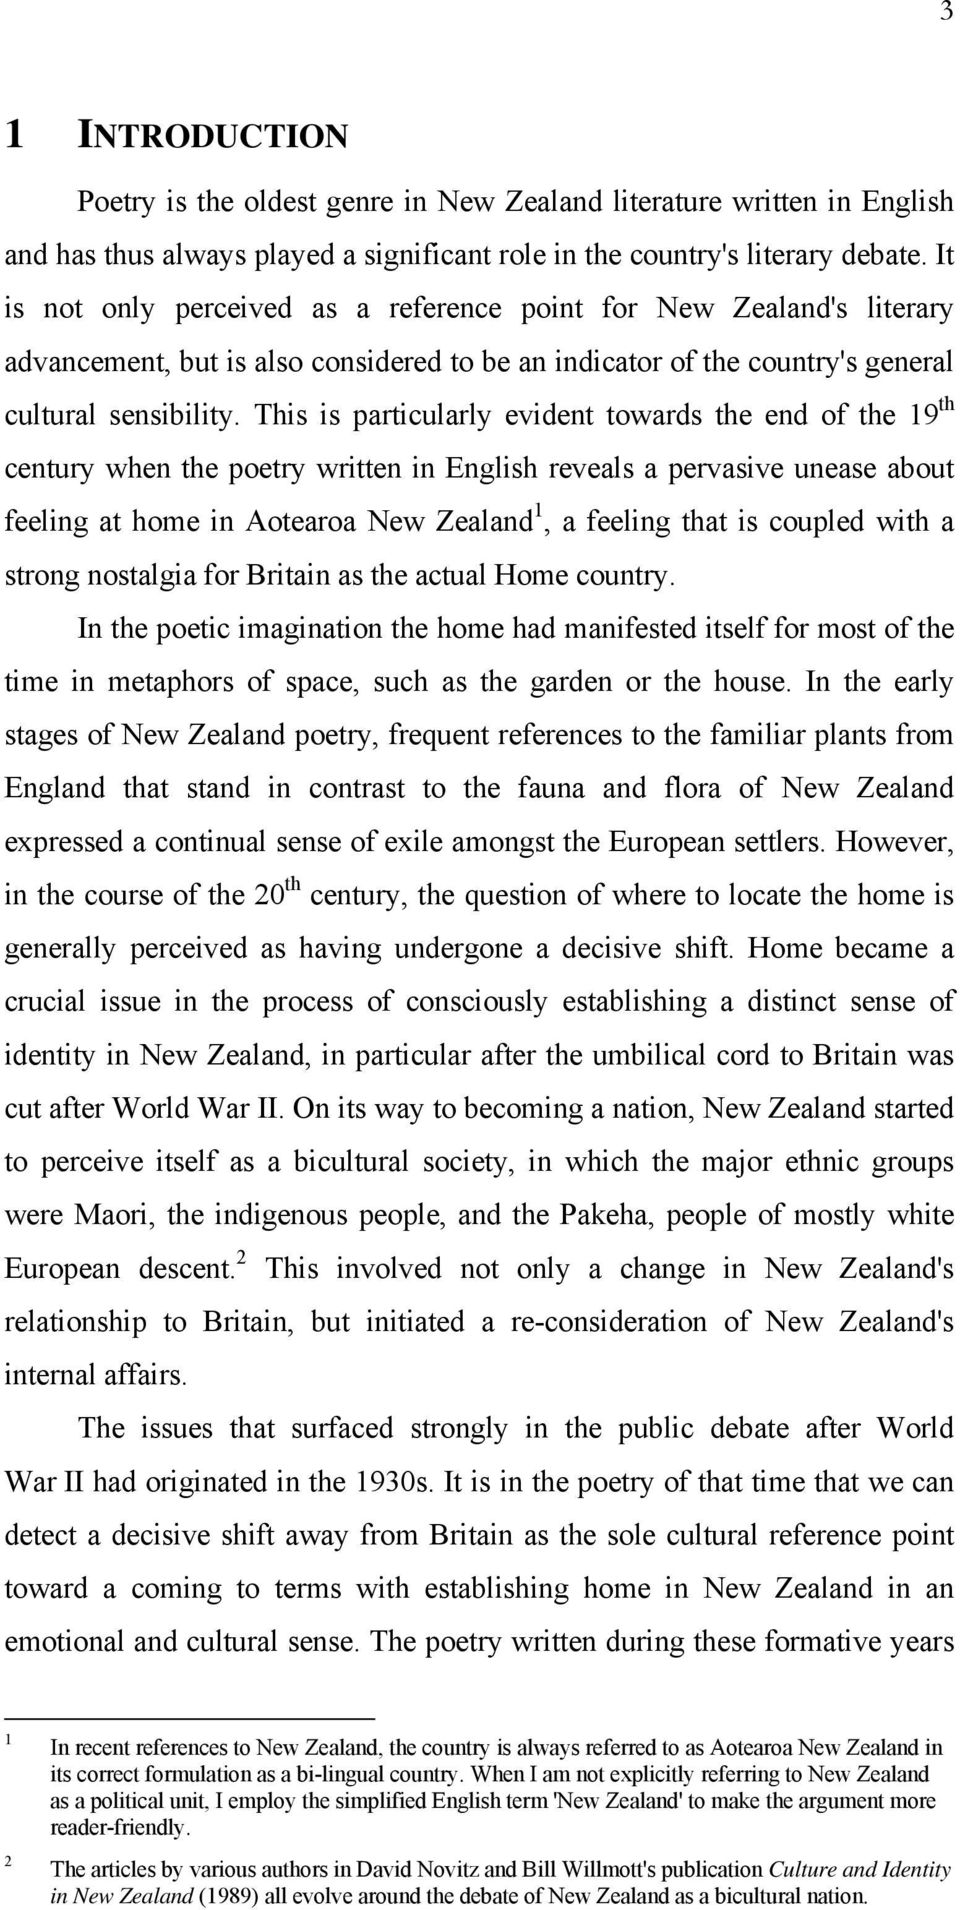 This is particularly evident towards the end of the 19 th century when the poetry written in English reveals a pervasive unease about feeling at home in Aotearoa New Zealand 1, a feeling that is